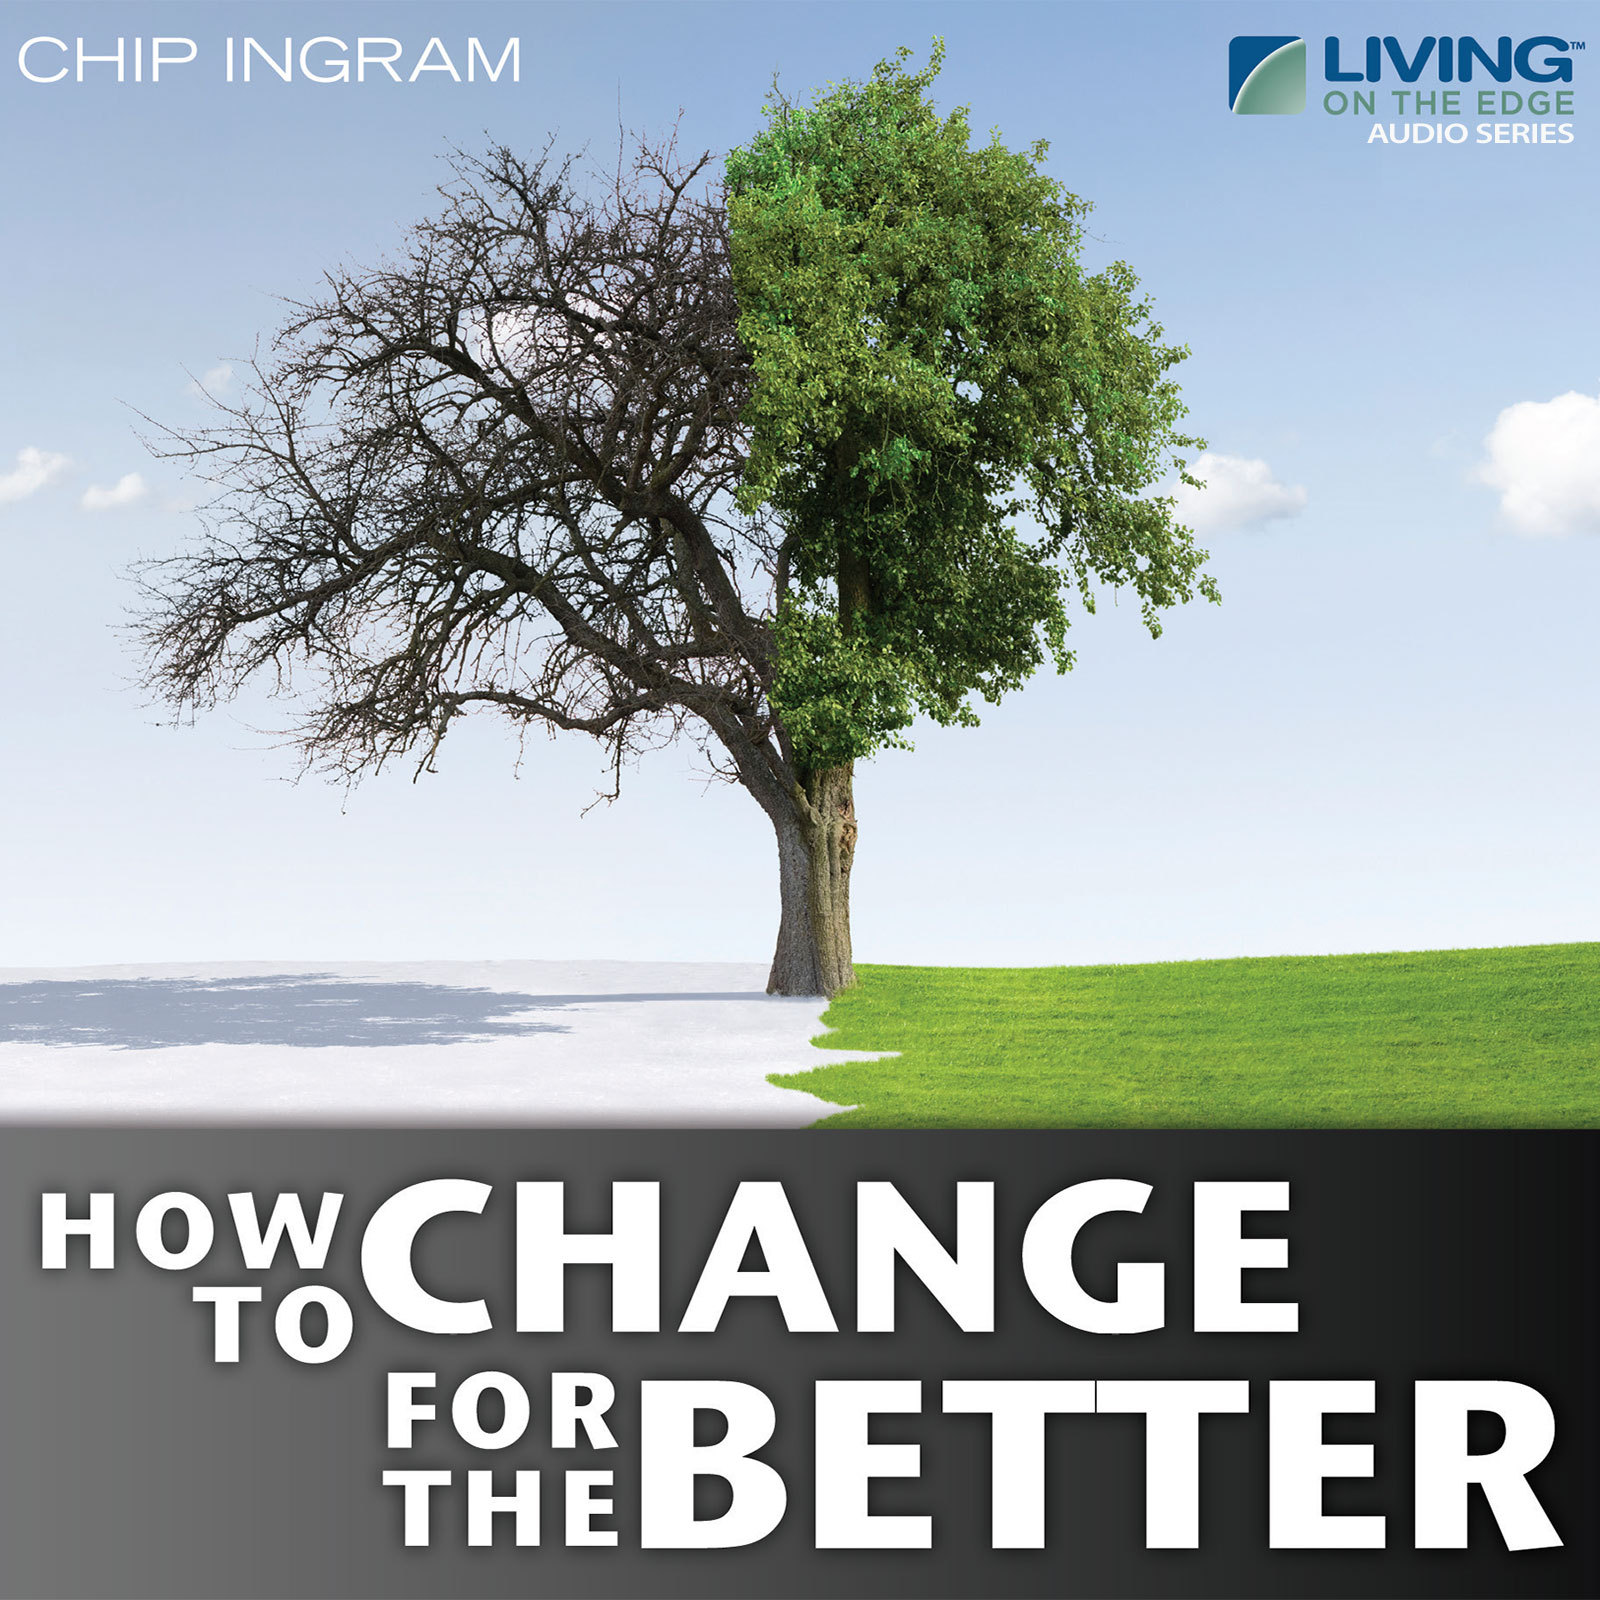 How to Change for the Better Chip Ingram